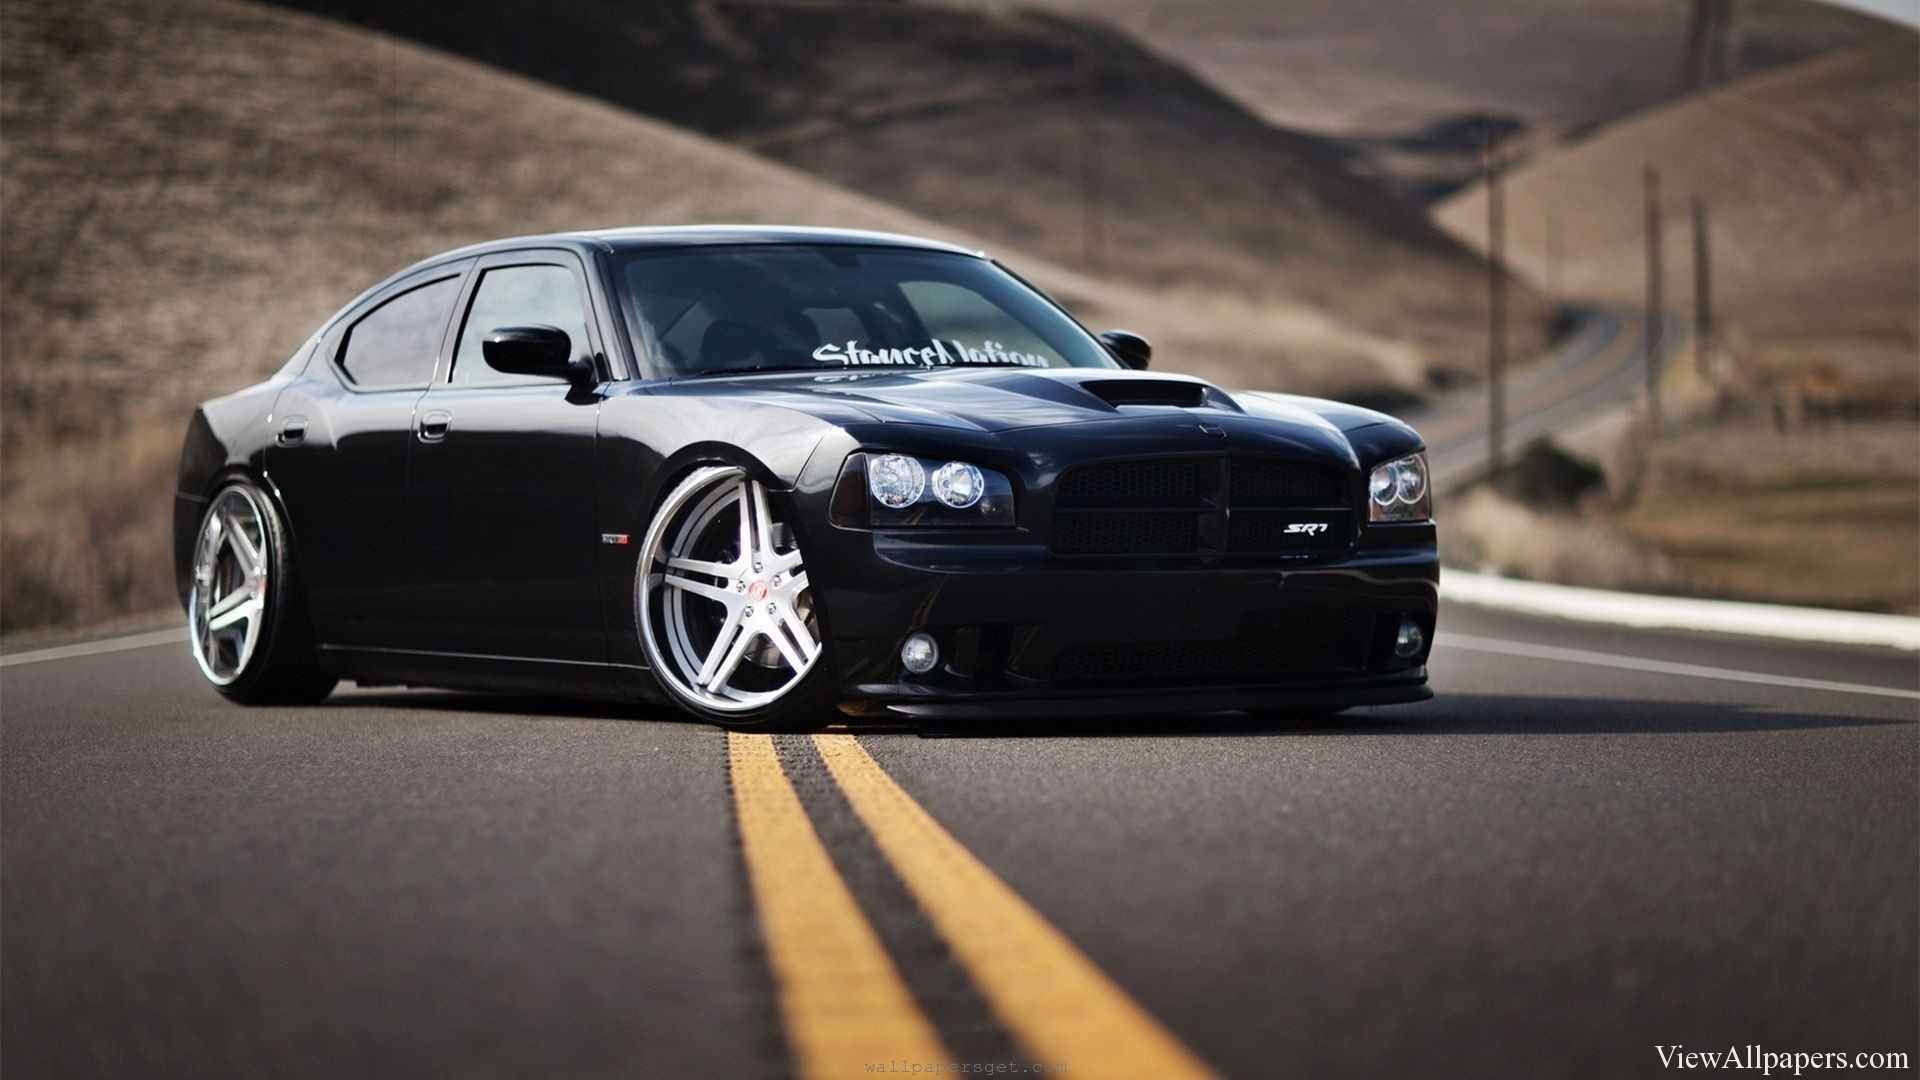 Dodge Charger Photos For PC computers desktop background smartphones 1920x1080